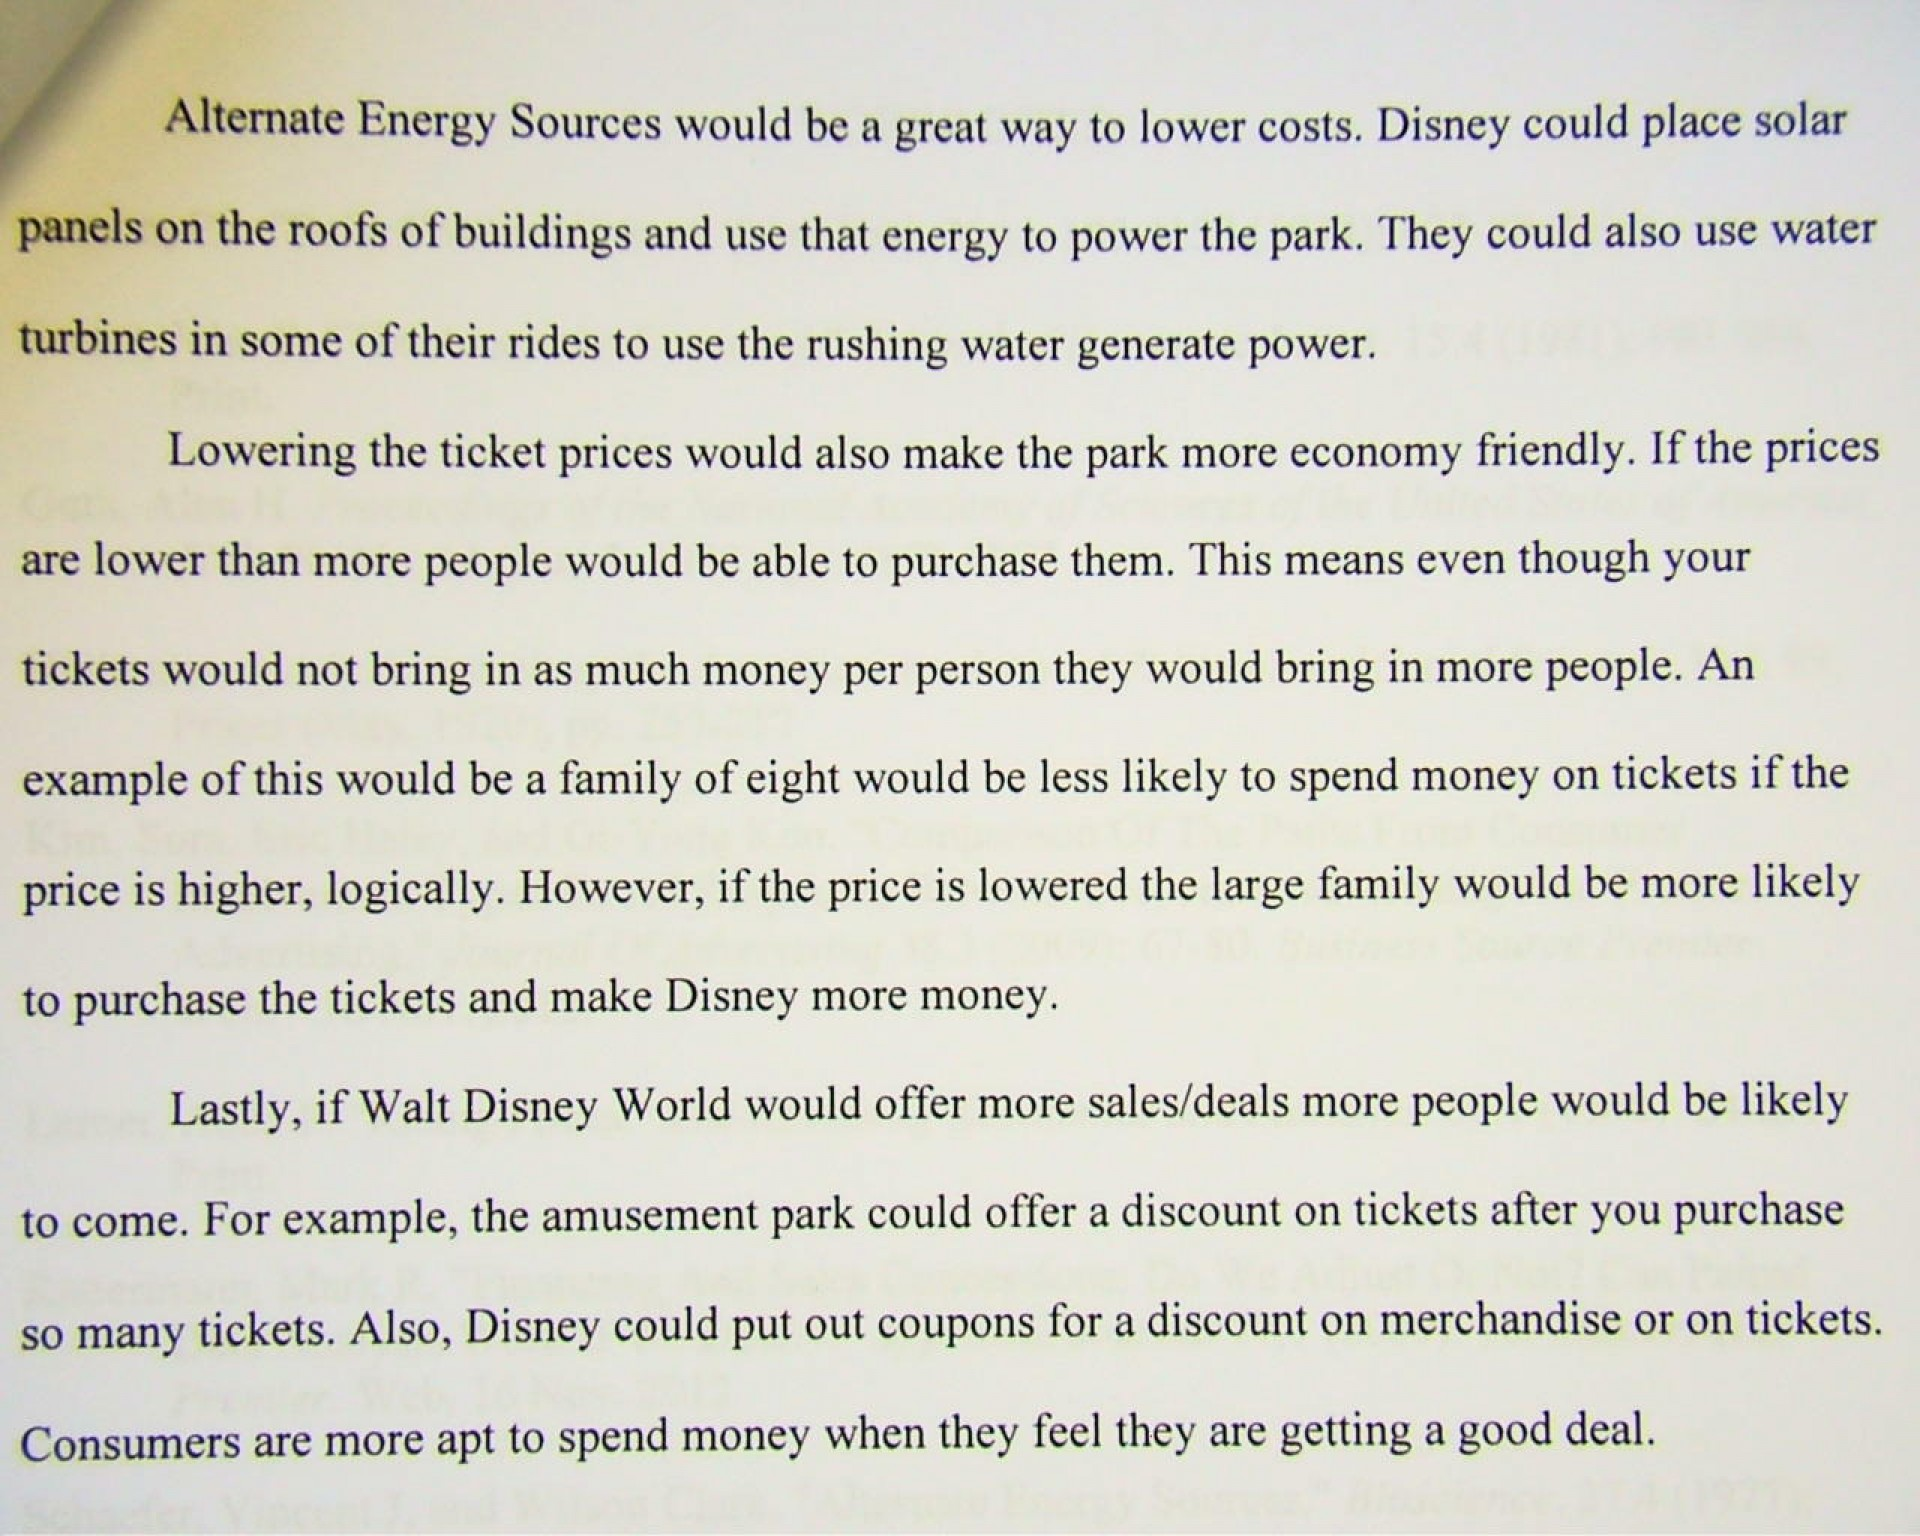 008 Essay Example Student2bsample Proposal2bsupporting2bideas Writing Top A Satirical Examples Of Satire Topics To Write On Sample Essays 1920